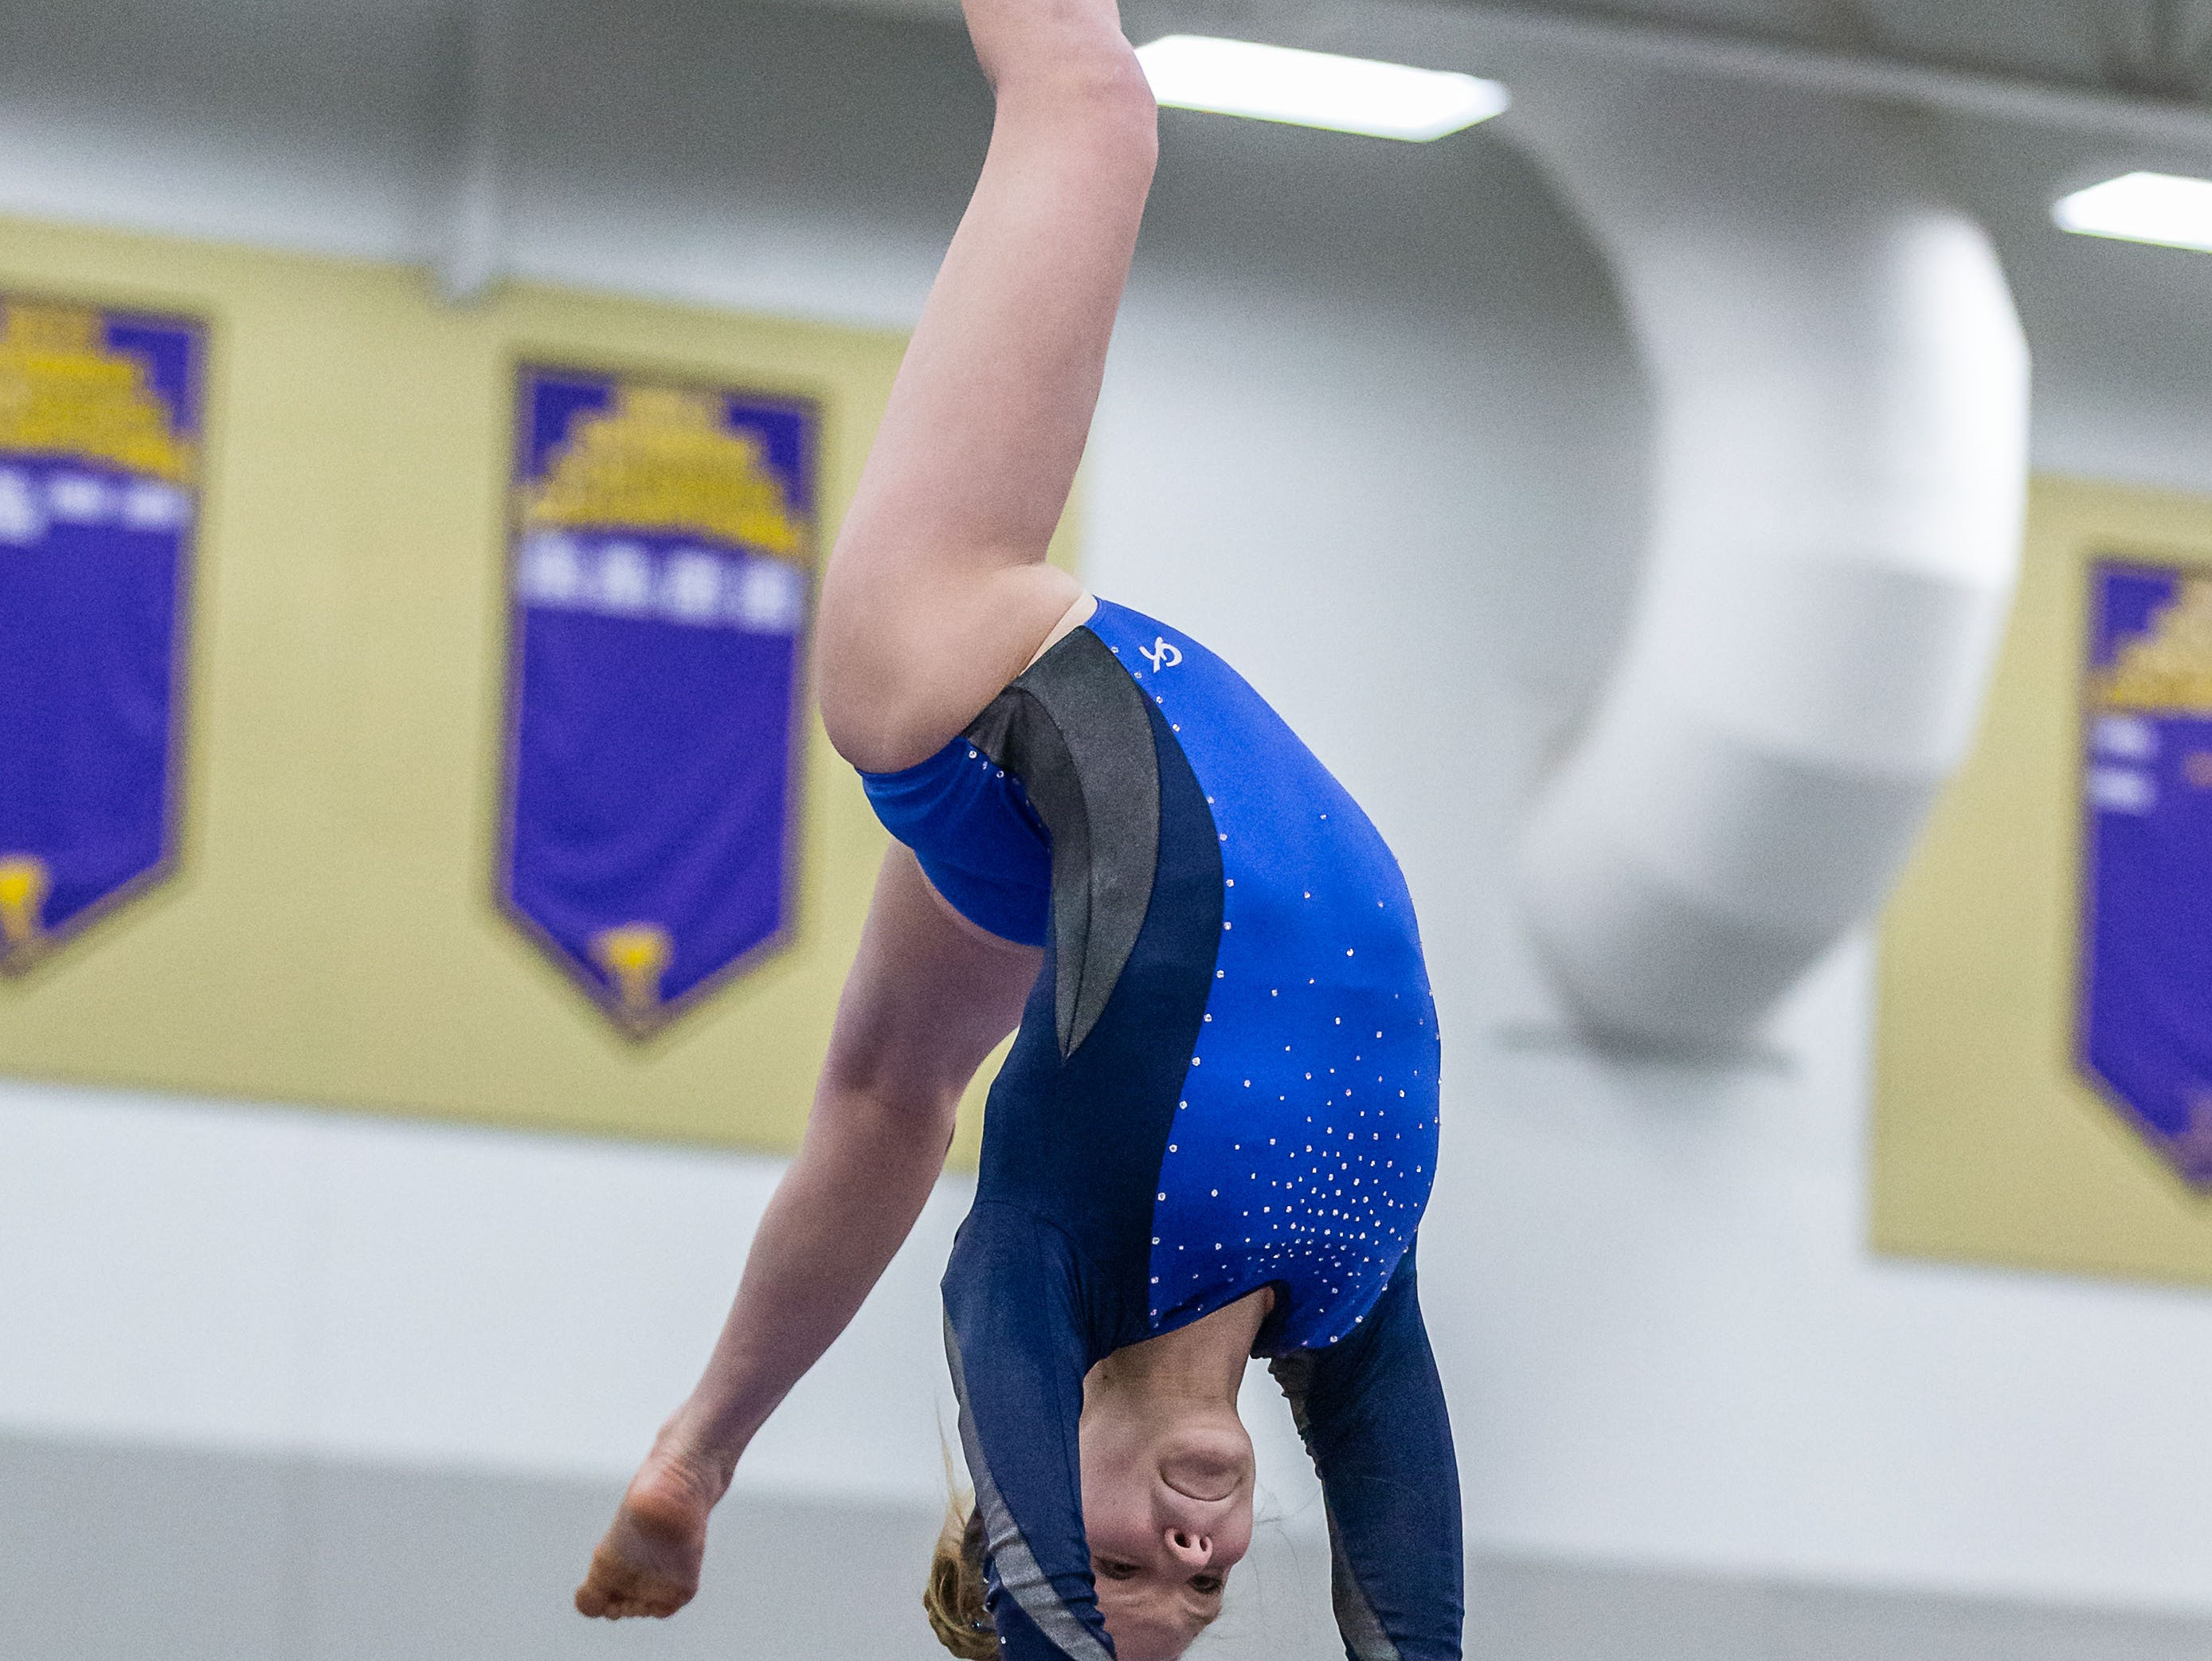 Brookfield co-op gymnast Sophie Latona competes on the beam during the Division 1 sectional at Oconomowoc on Friday, Feb. 22, 2019. Latona placed fifth on the beam.